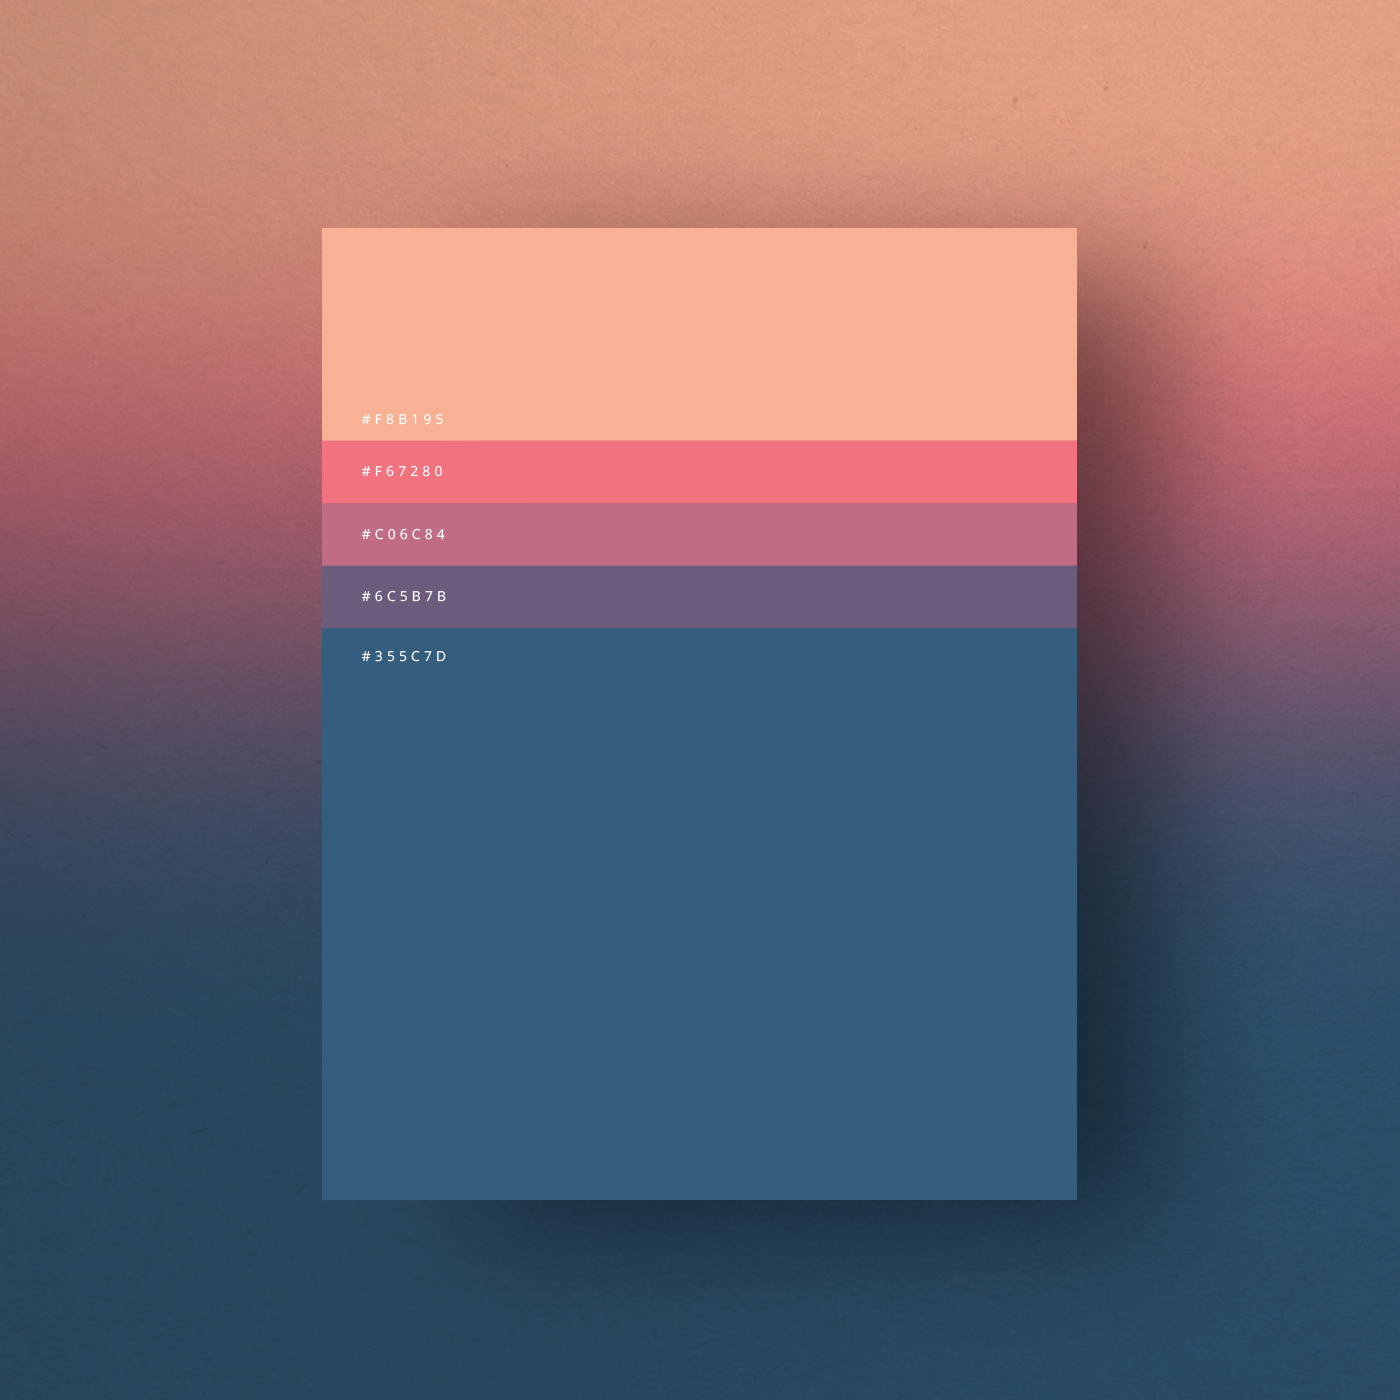 Colorful Minimalist Design: Minimalist Color Palette Posters Collection When You Think